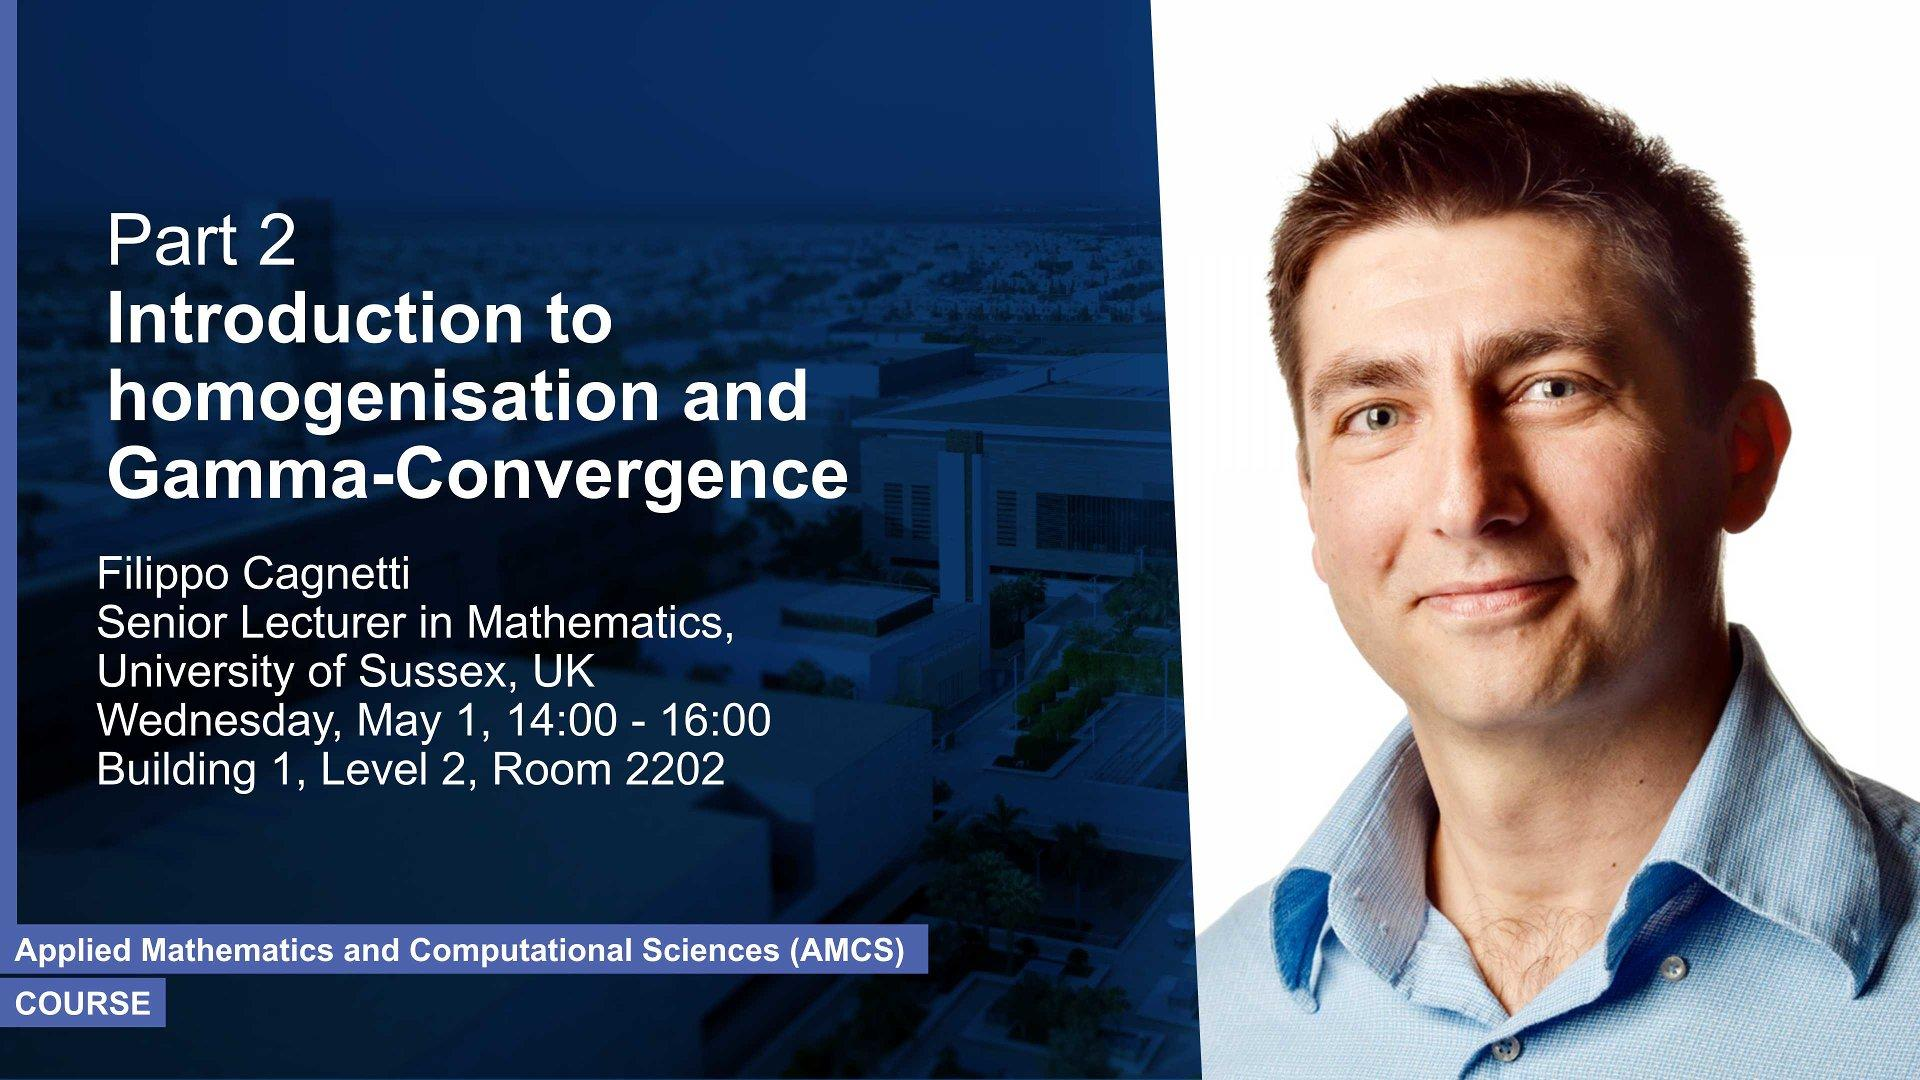 KAUST CEMSE AMCS Course Part 2 Filippo Cagnetti